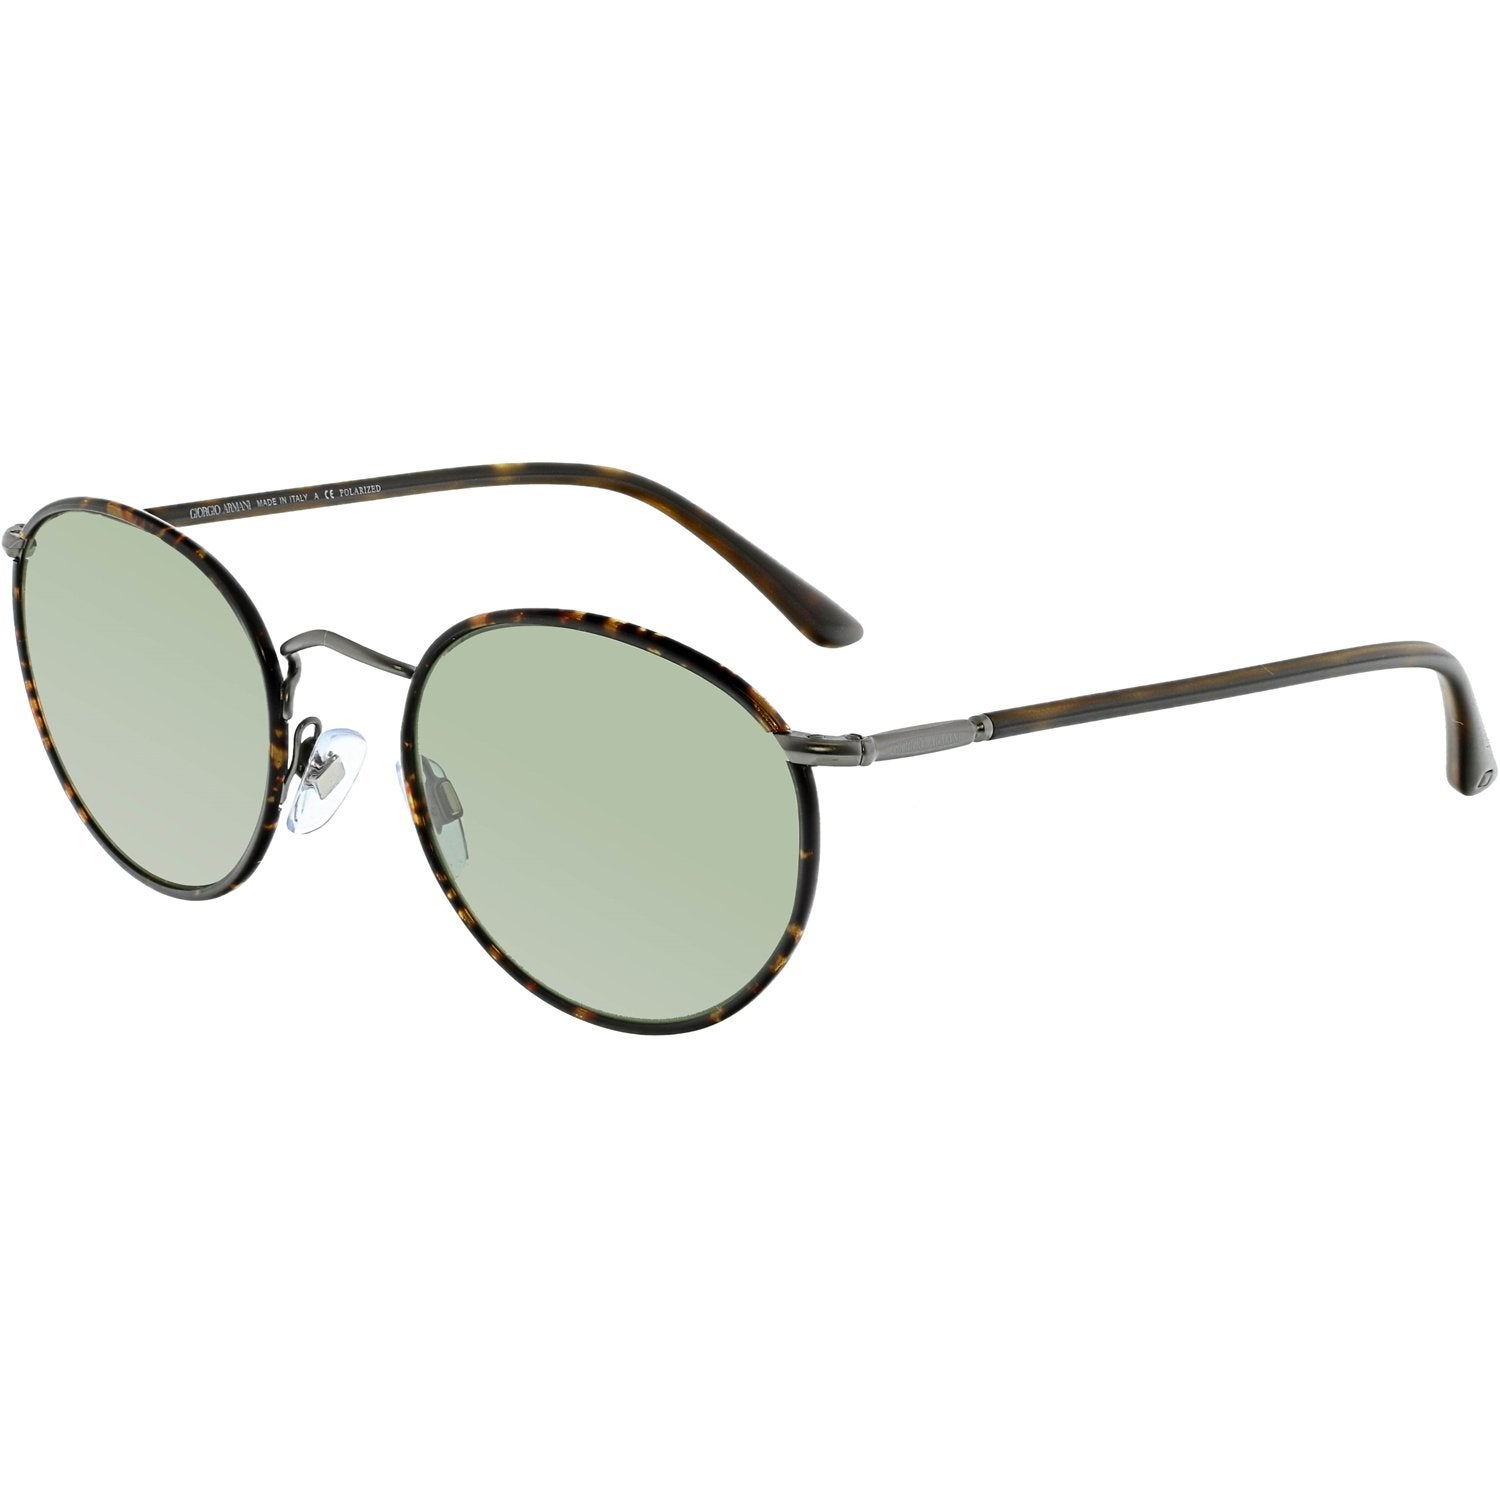 87cb2086df Giorgio Armani Polarized Aviator Sunglasses - Restaurant and Palinka Bar